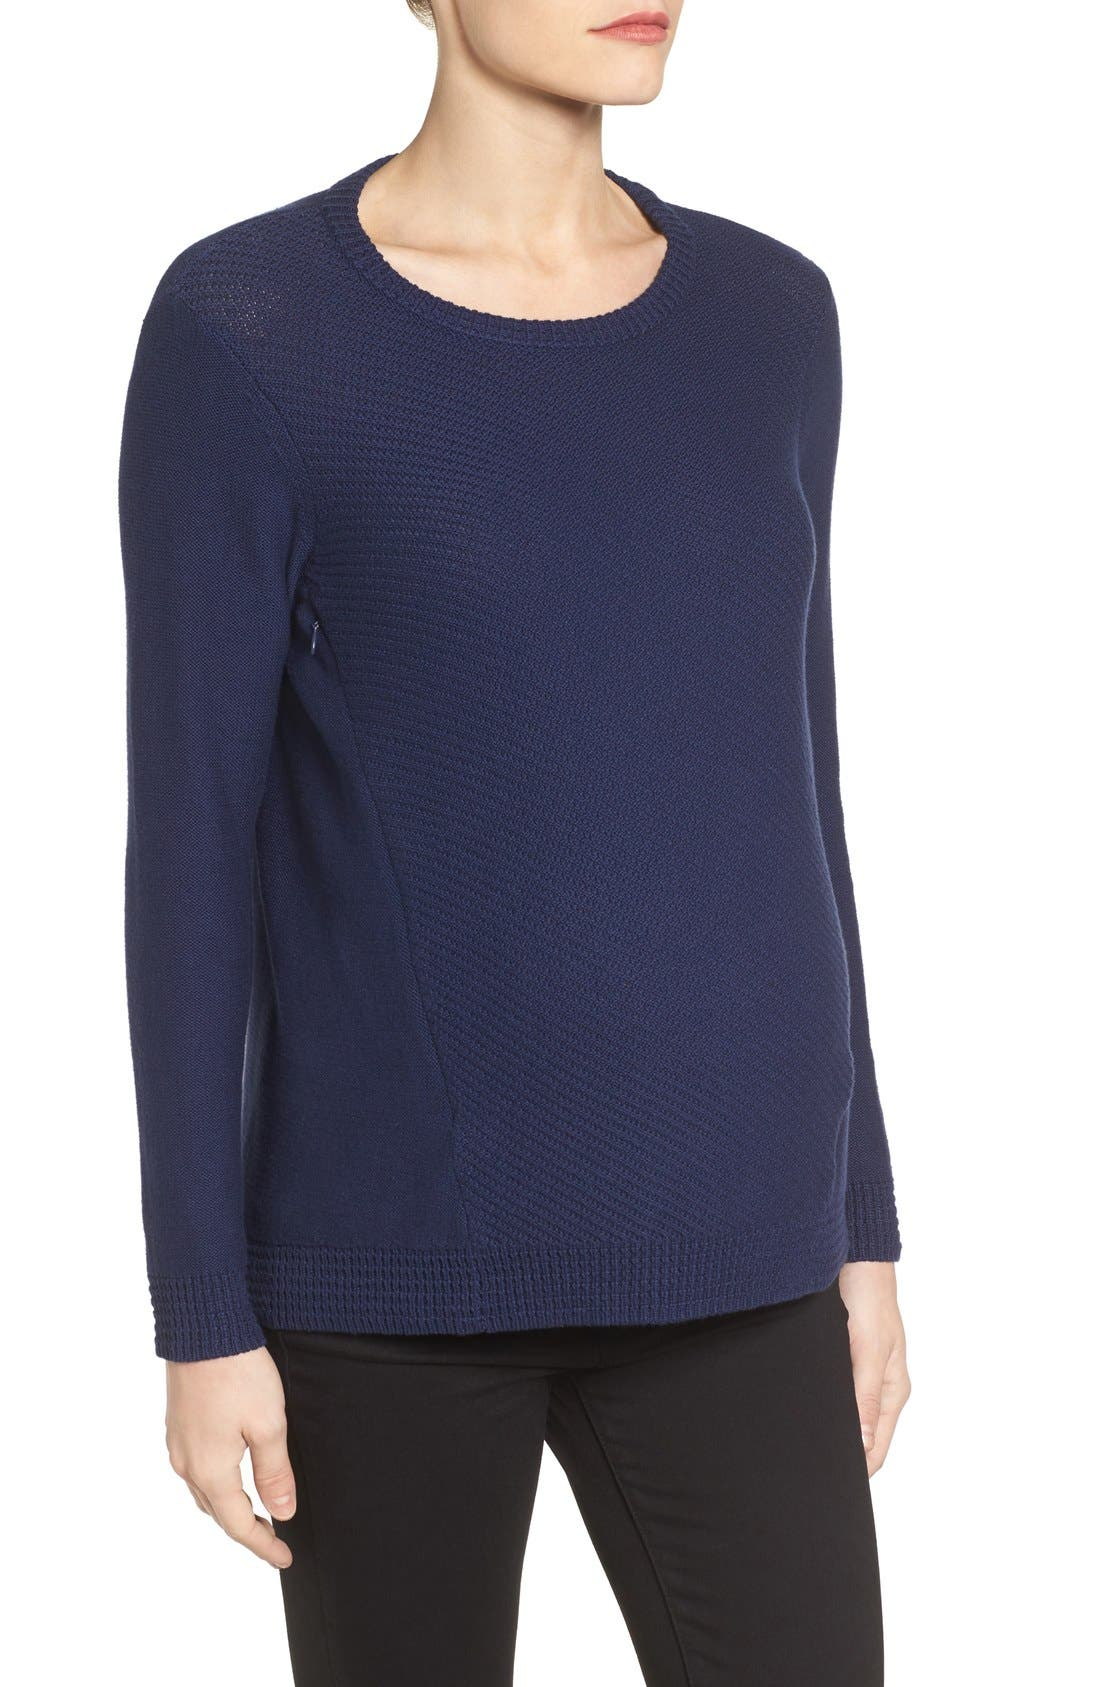 Wiley Maternity/Nursing Sweatshirt,                             Alternate thumbnail 3, color,                             Navy